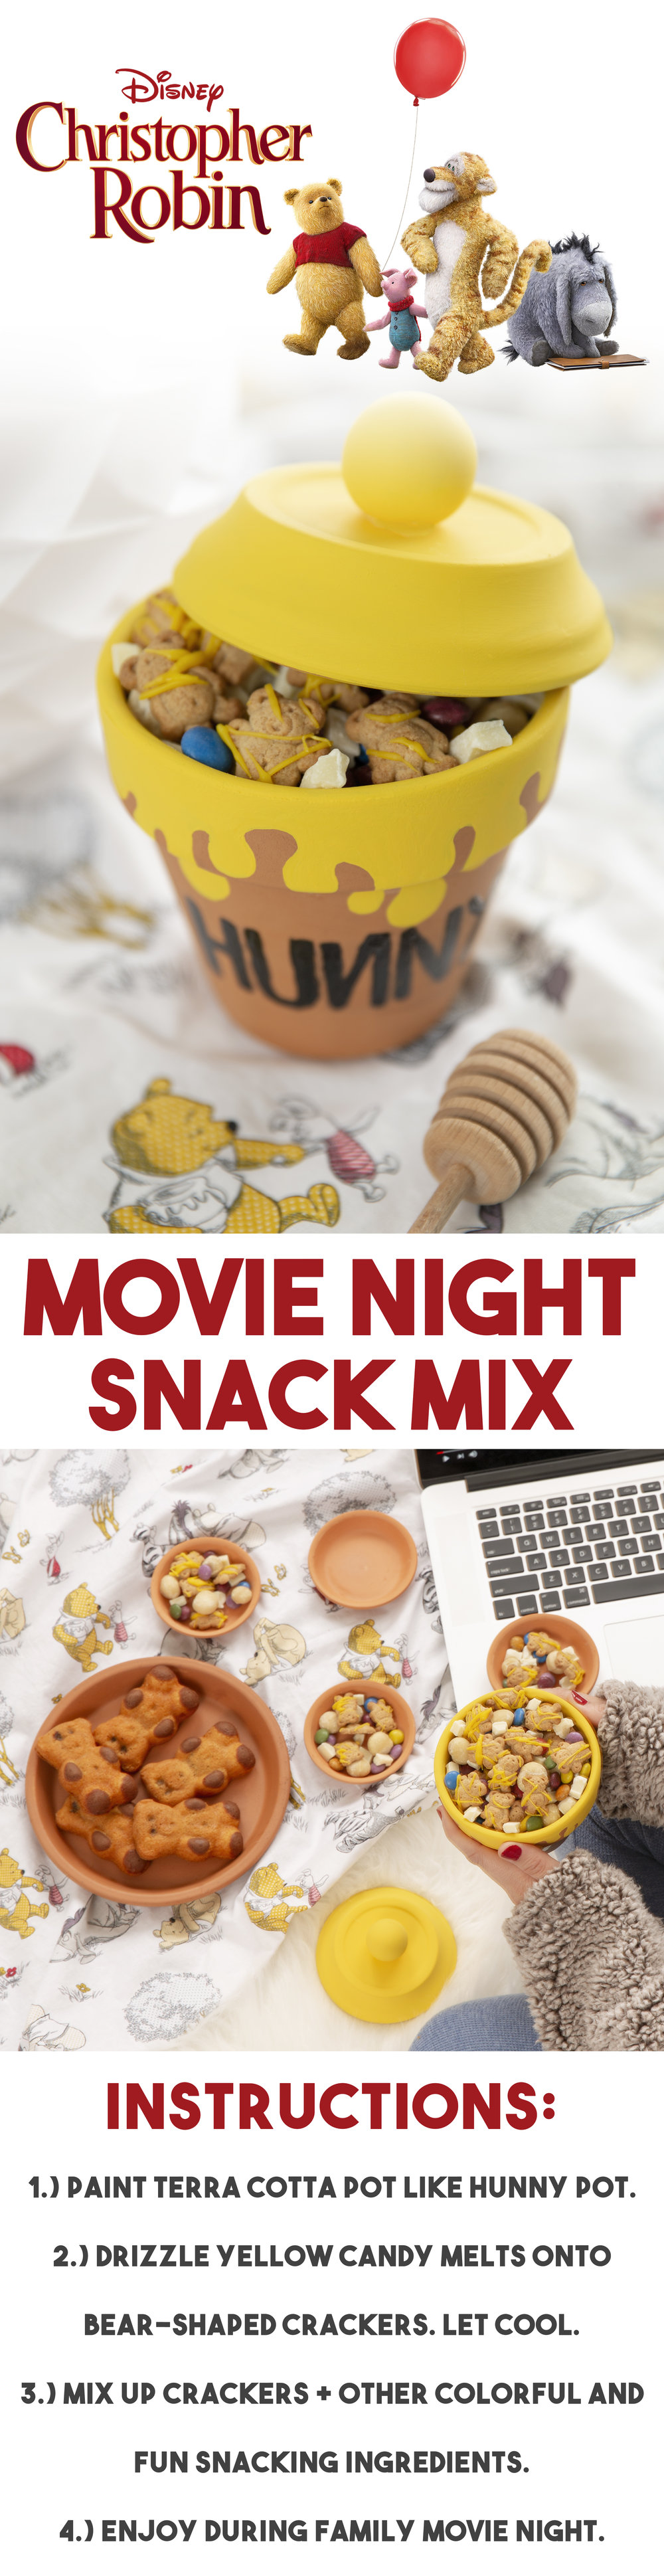 Winnie The Pooh Snack Mix Recipe for Movie Night